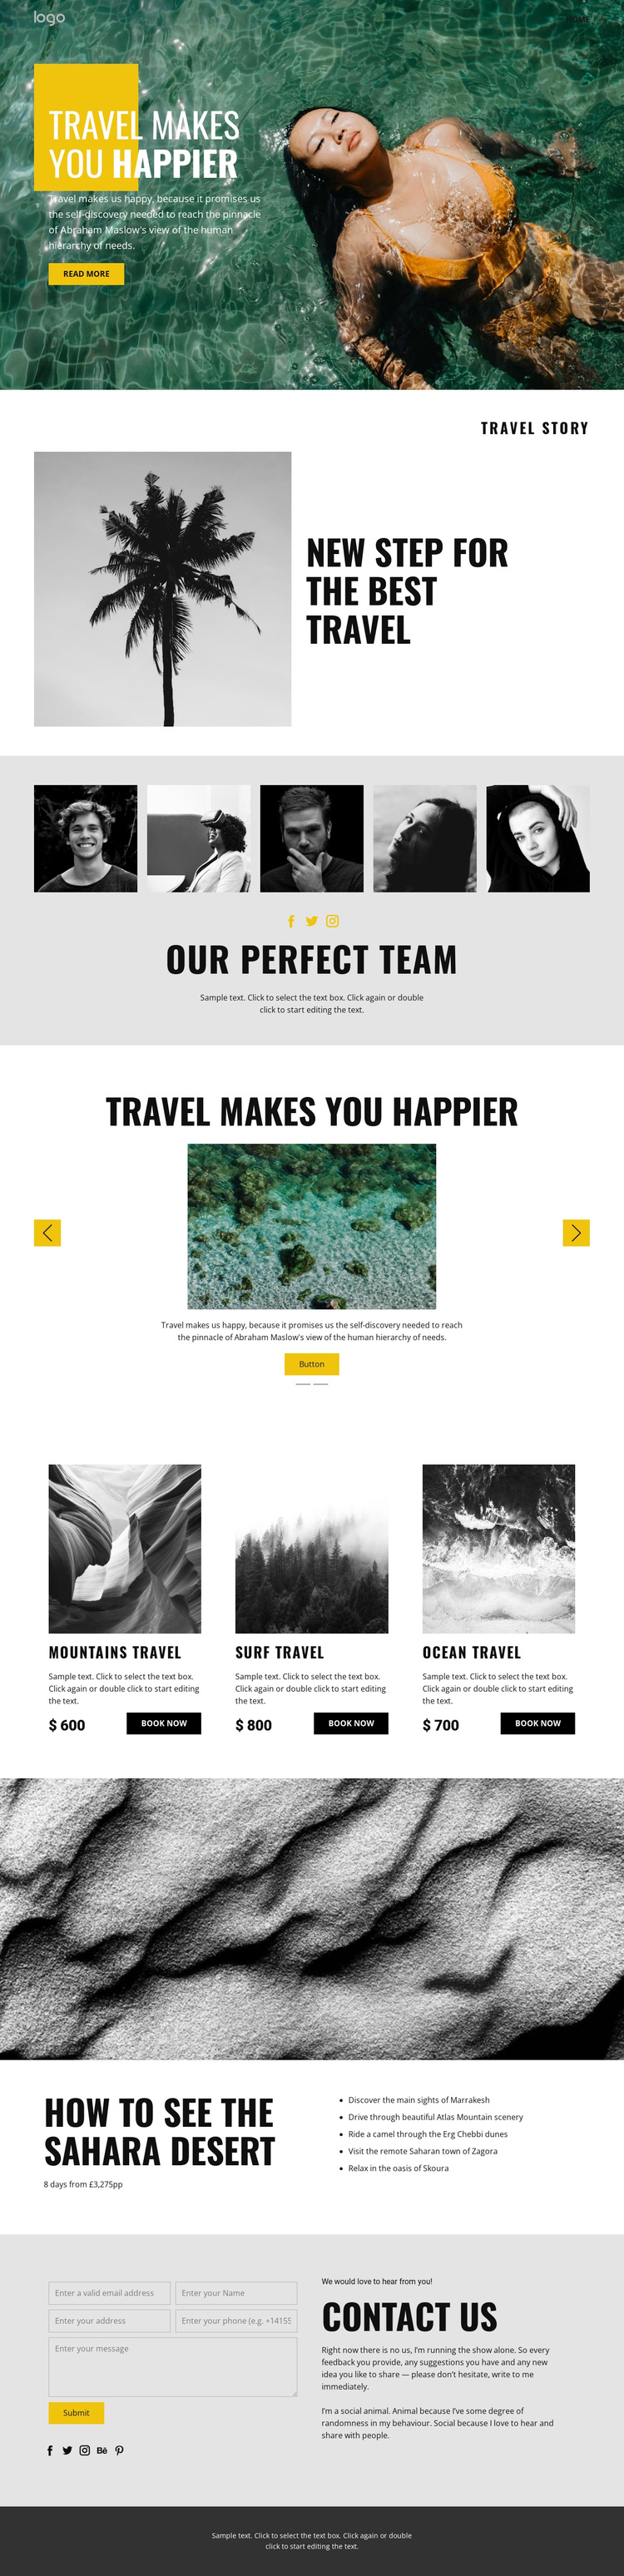 Happy people deserve travel Website Builder Software